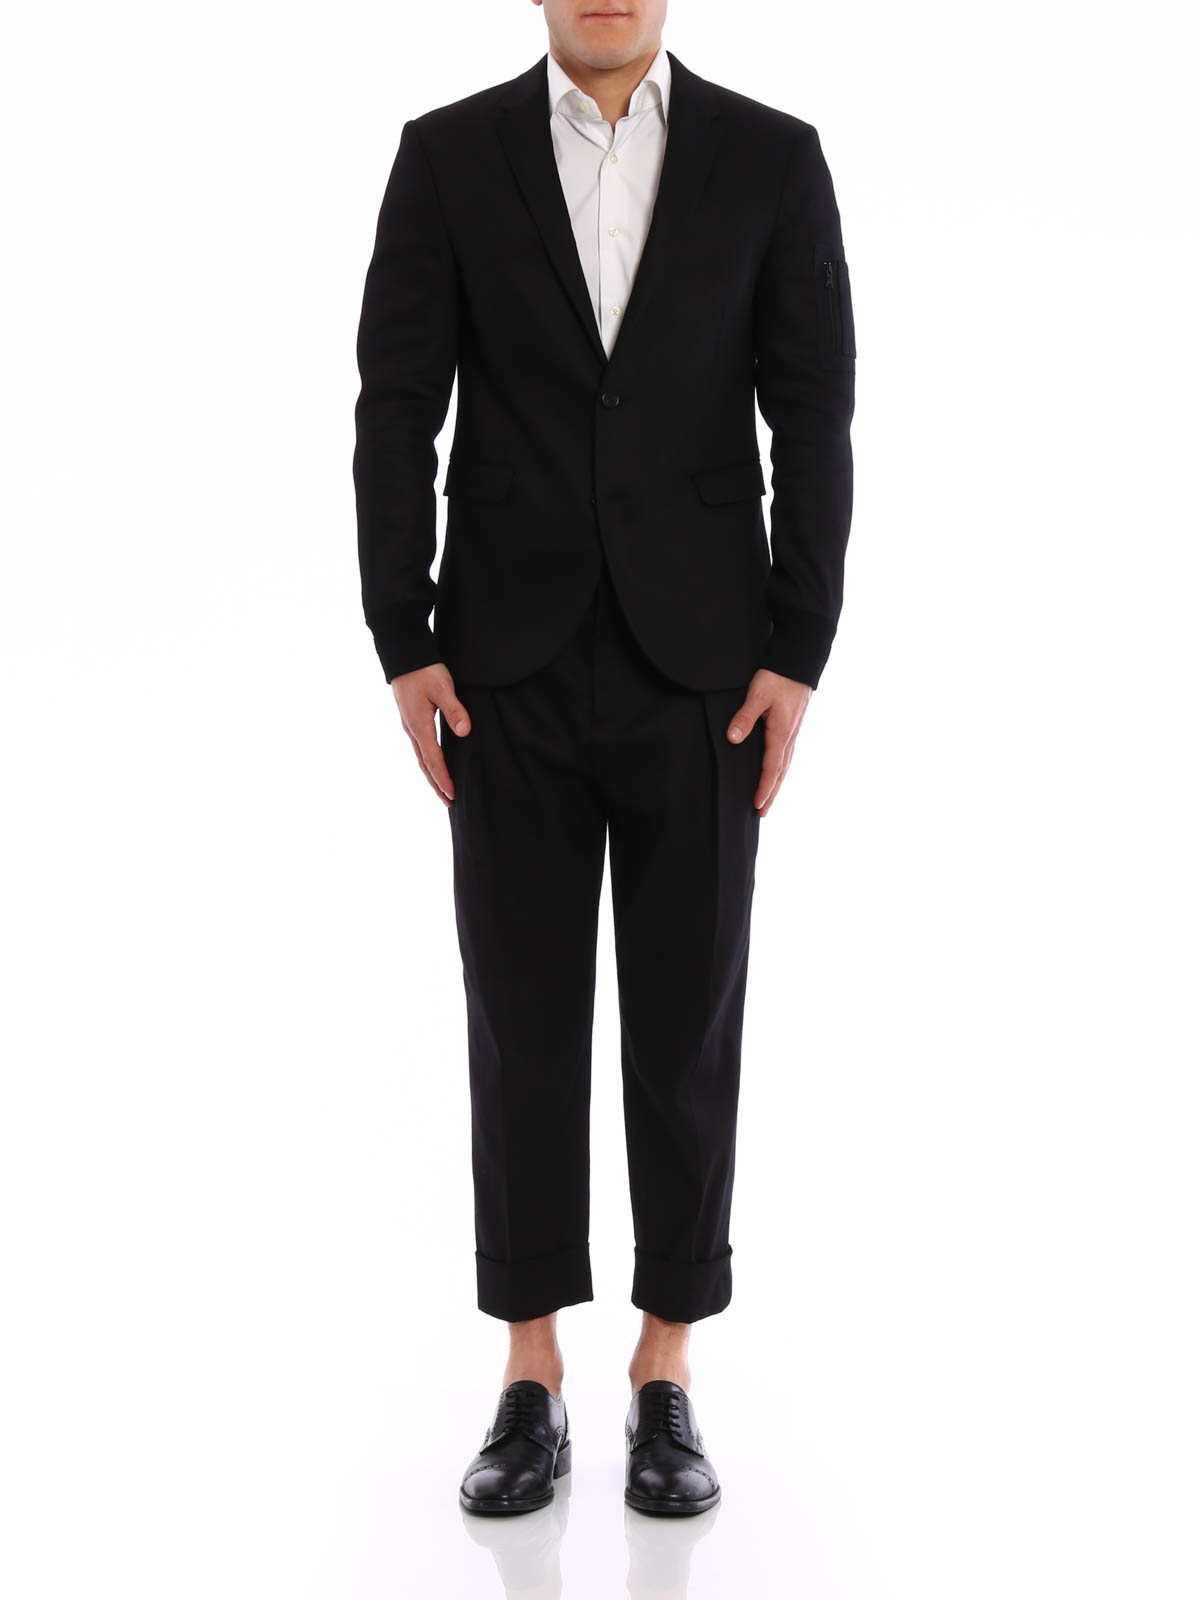 Do you want to buy mens slim fit blazers jackets? mens slim fit blazers jackets on NewChic is good-quality, all mens slim fit blazers jackets online sell at wholesale prices, do not hesitate to buy mens slim fit blazers jackets here! We uses cookies (and similar techniques) to provide you with better products and services. Your permission will.